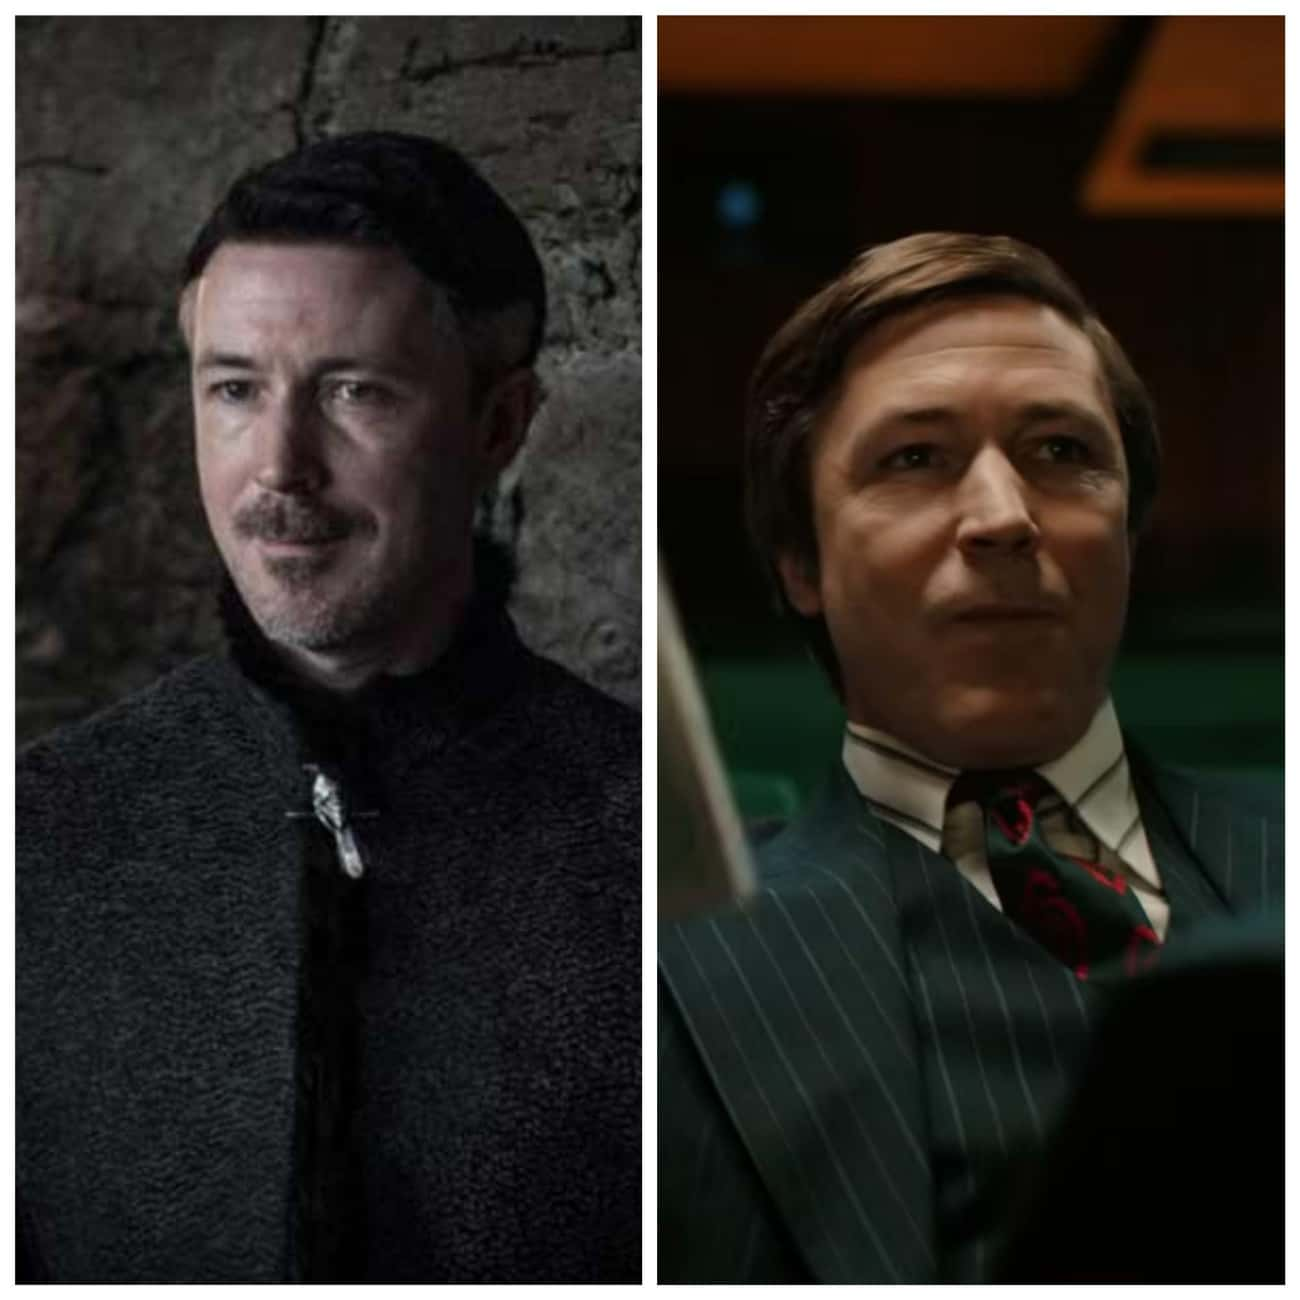 Aidan Gillen - Bohemian Rhapso is listed (or ranked) 4 on the list Times You've Seen the GoT Actors Before